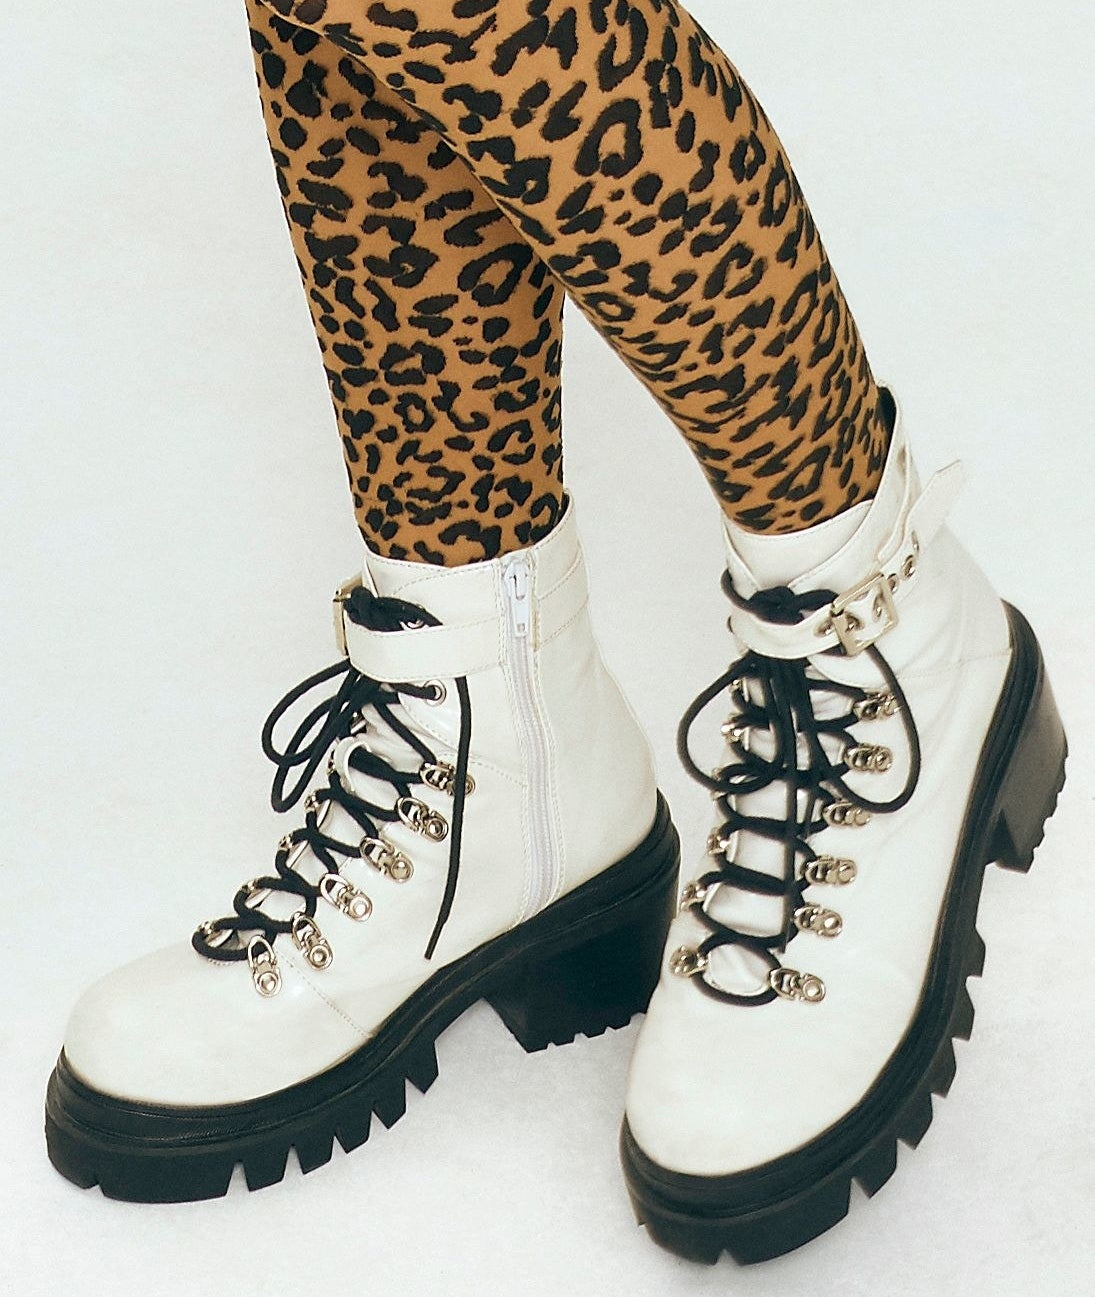 Model wearing the combat boots in white